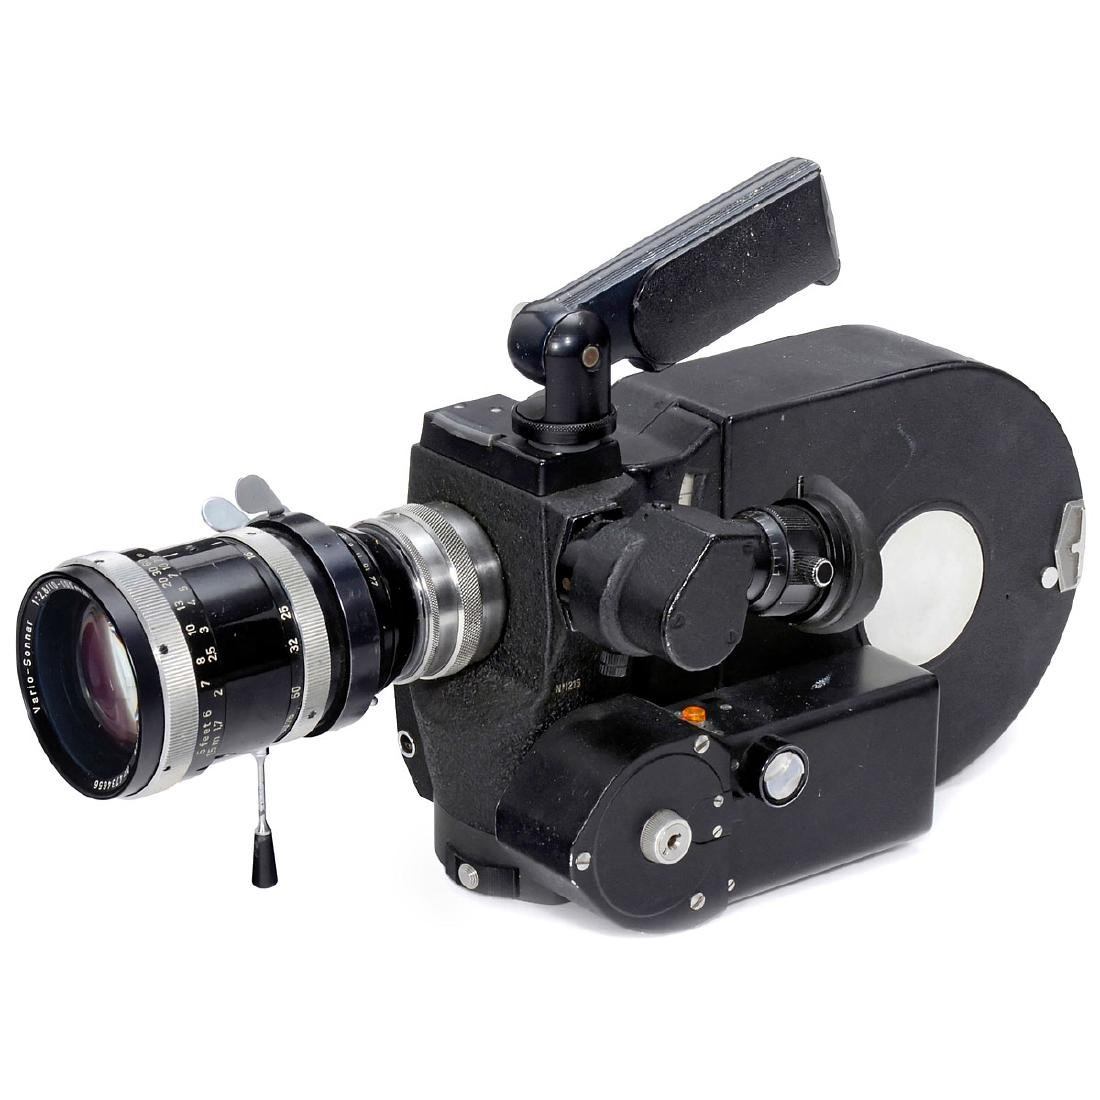 Eclair ACL 16 mm, c. 1975